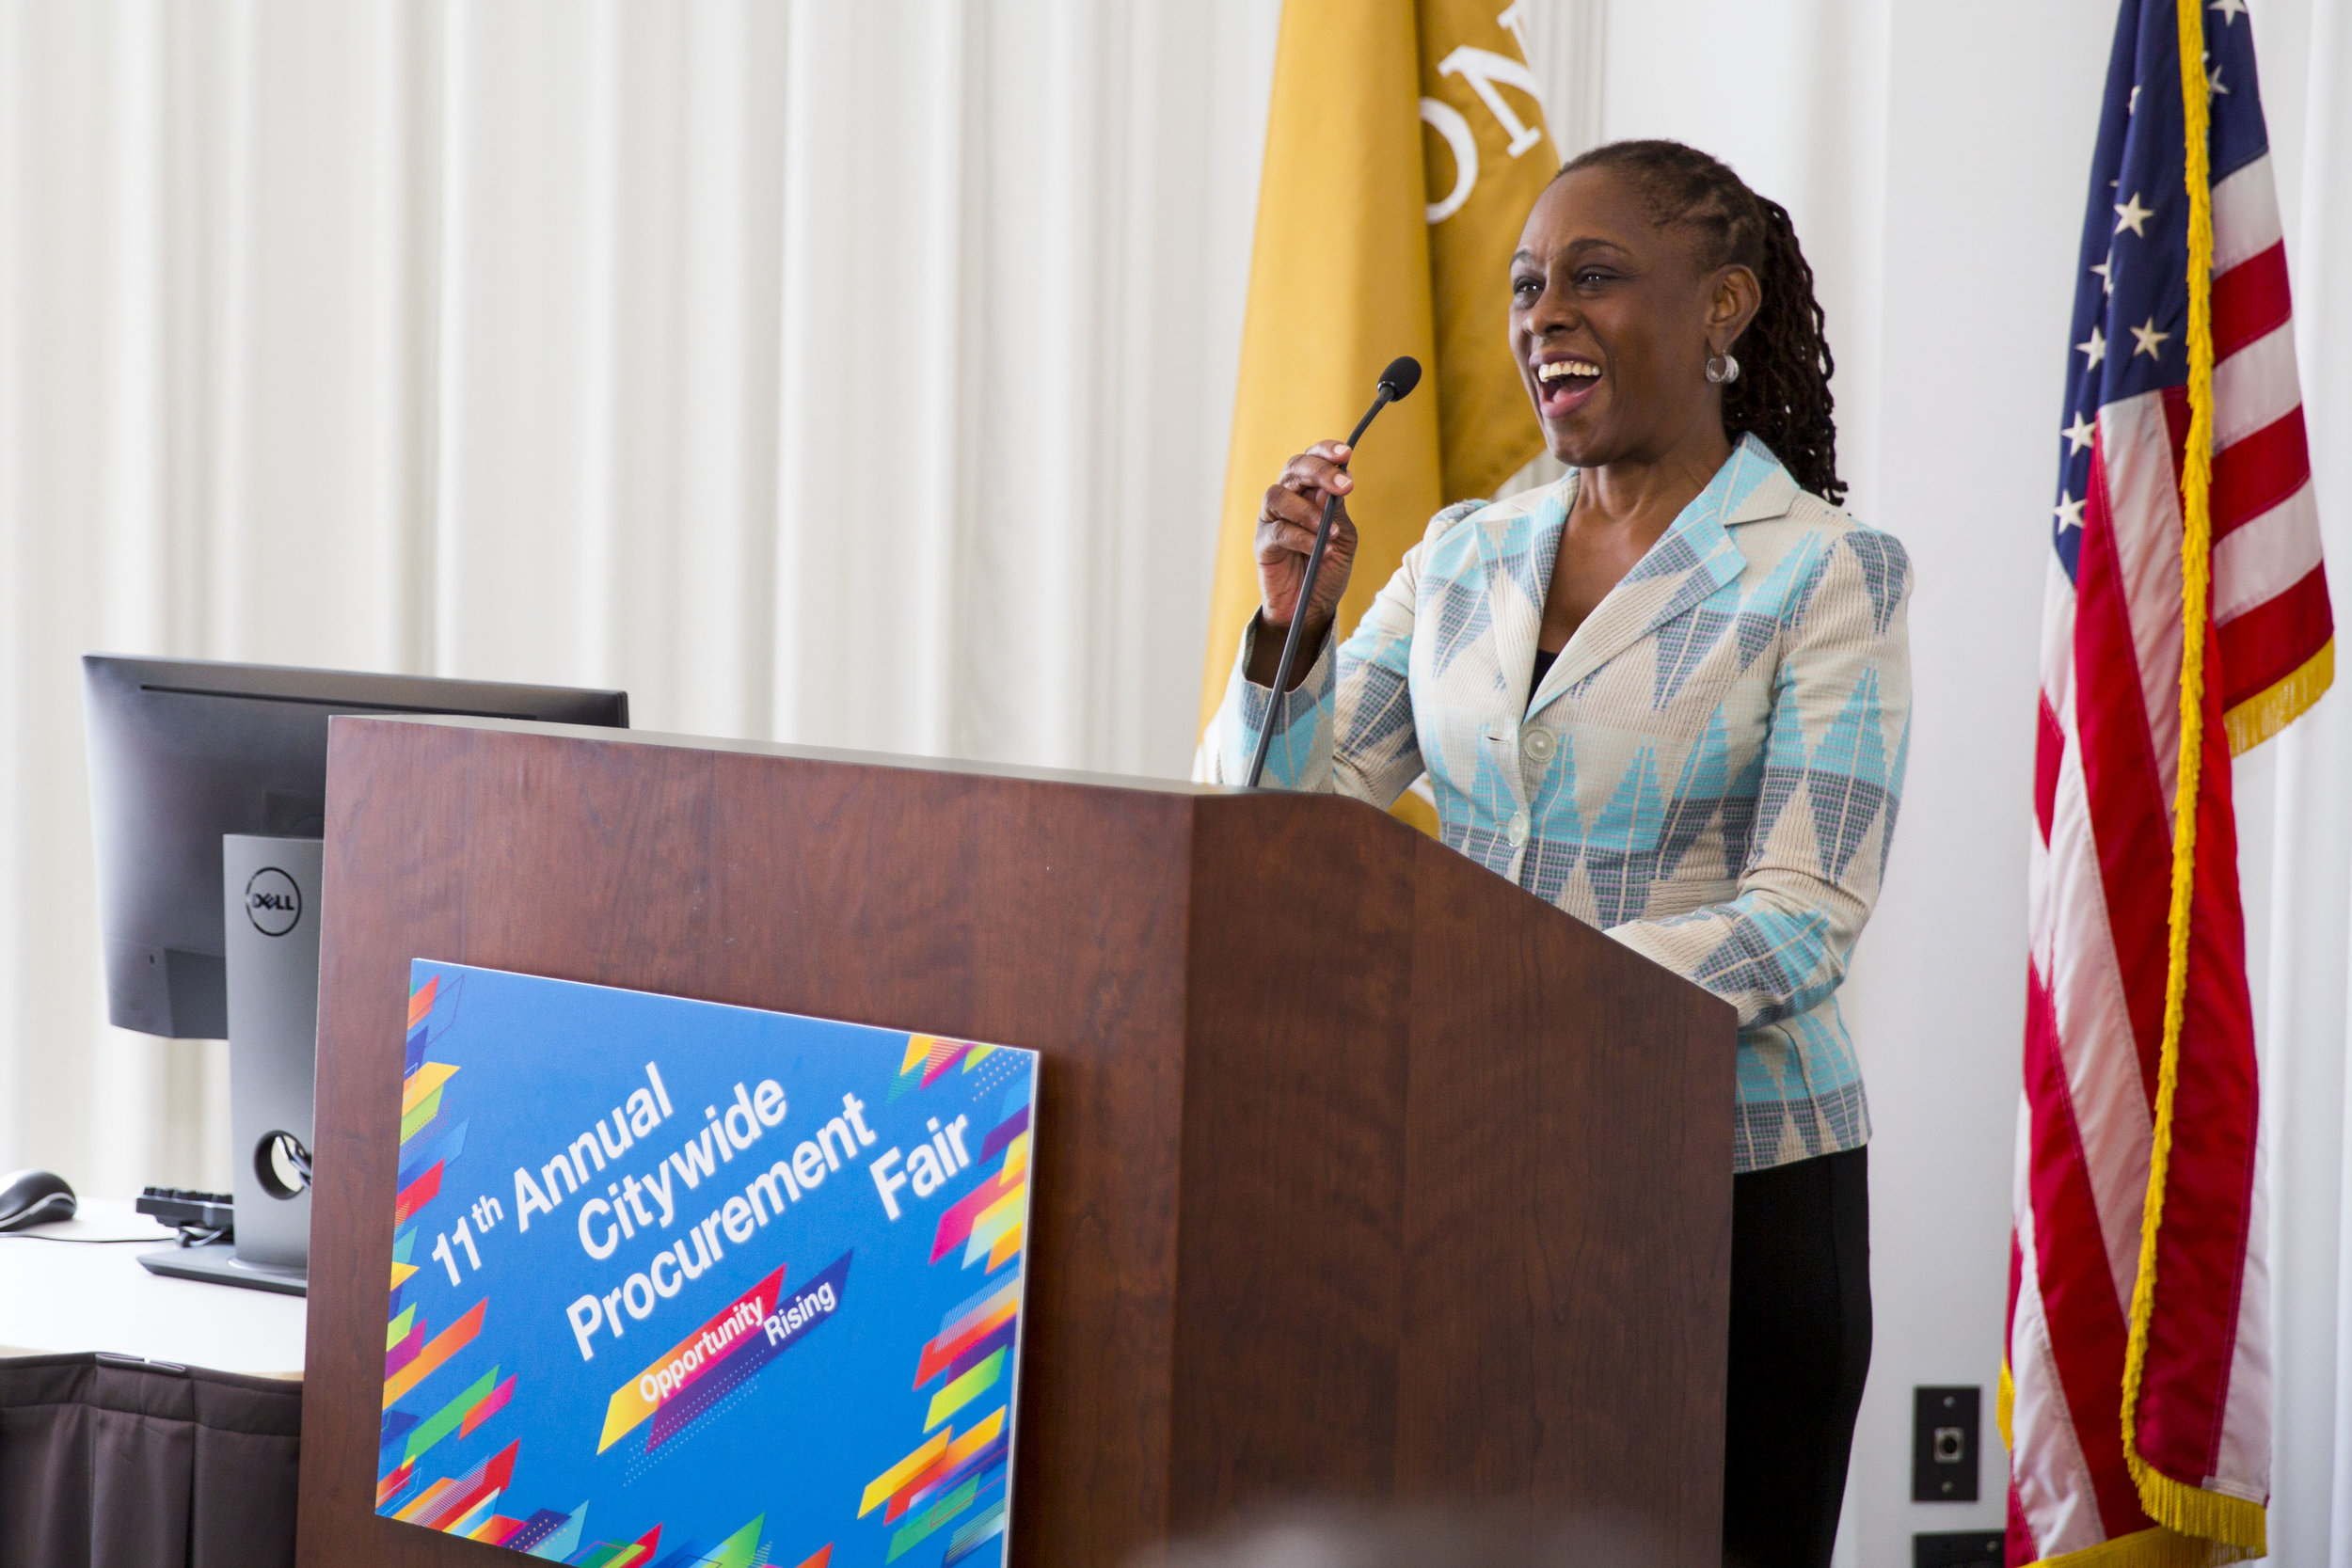 FIRST LADY CHIRLANE MCCRAY SPEAKS IN SBS OPPORTUNITY ROOM